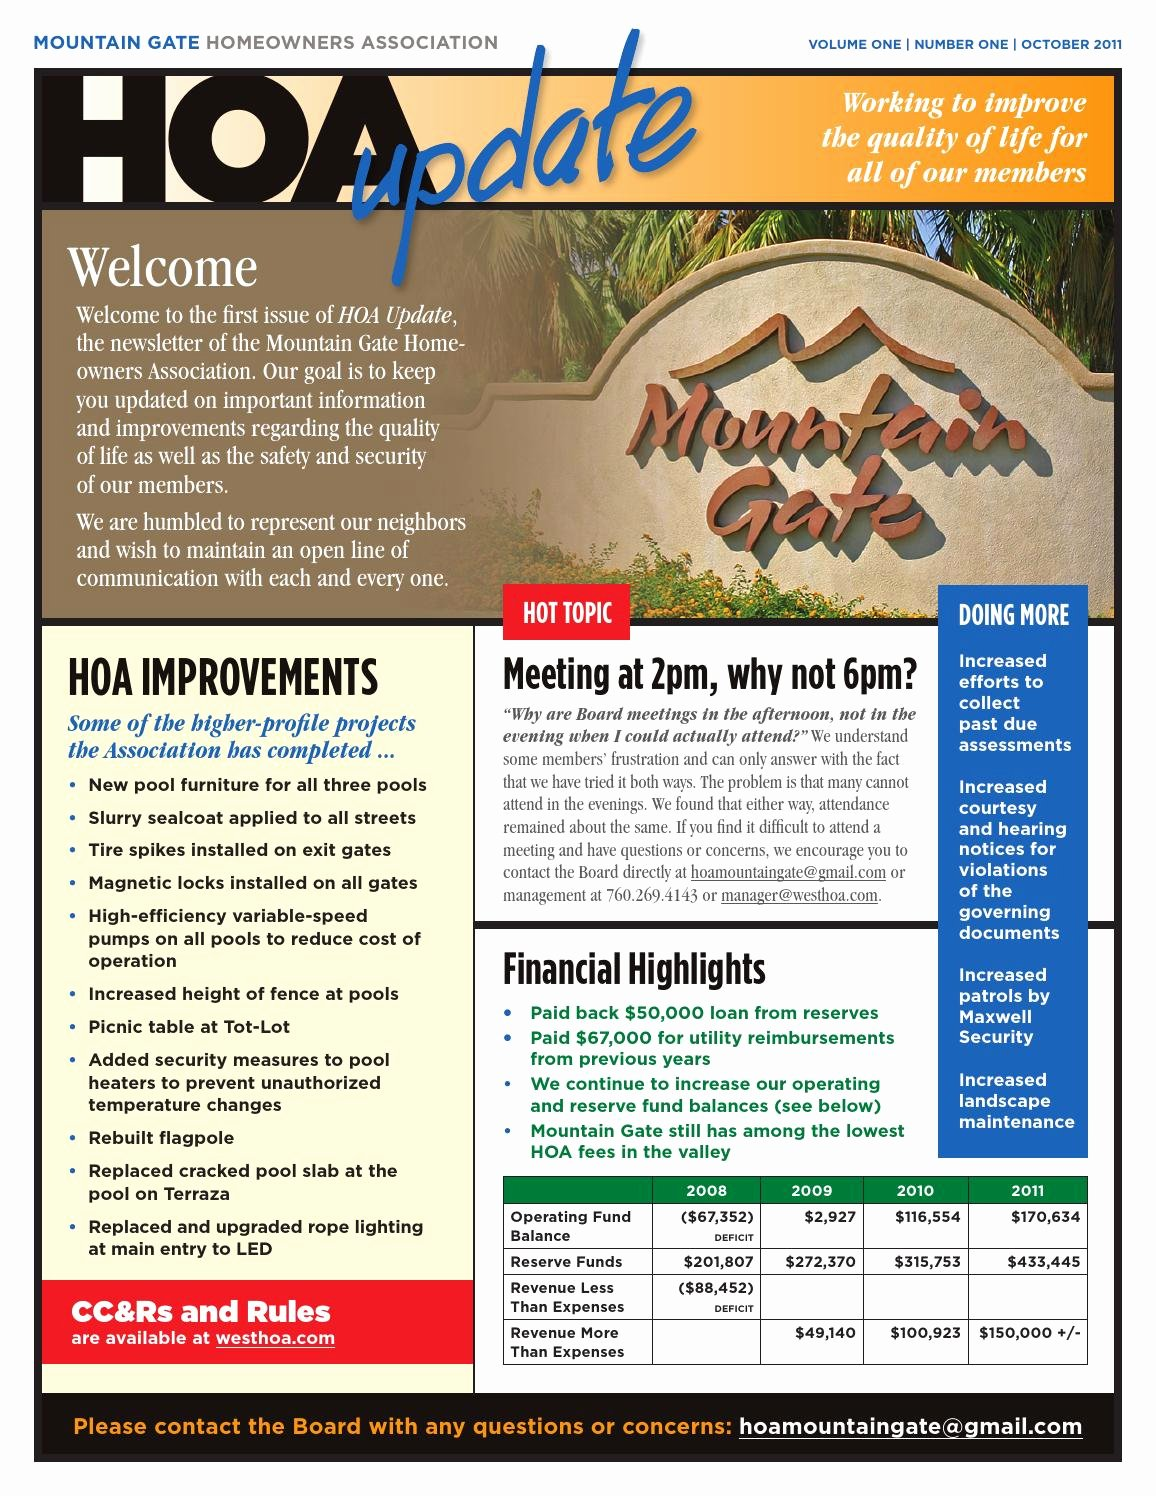 Homeowners association Newsletter Template Lovely Mountain Gate Hoa